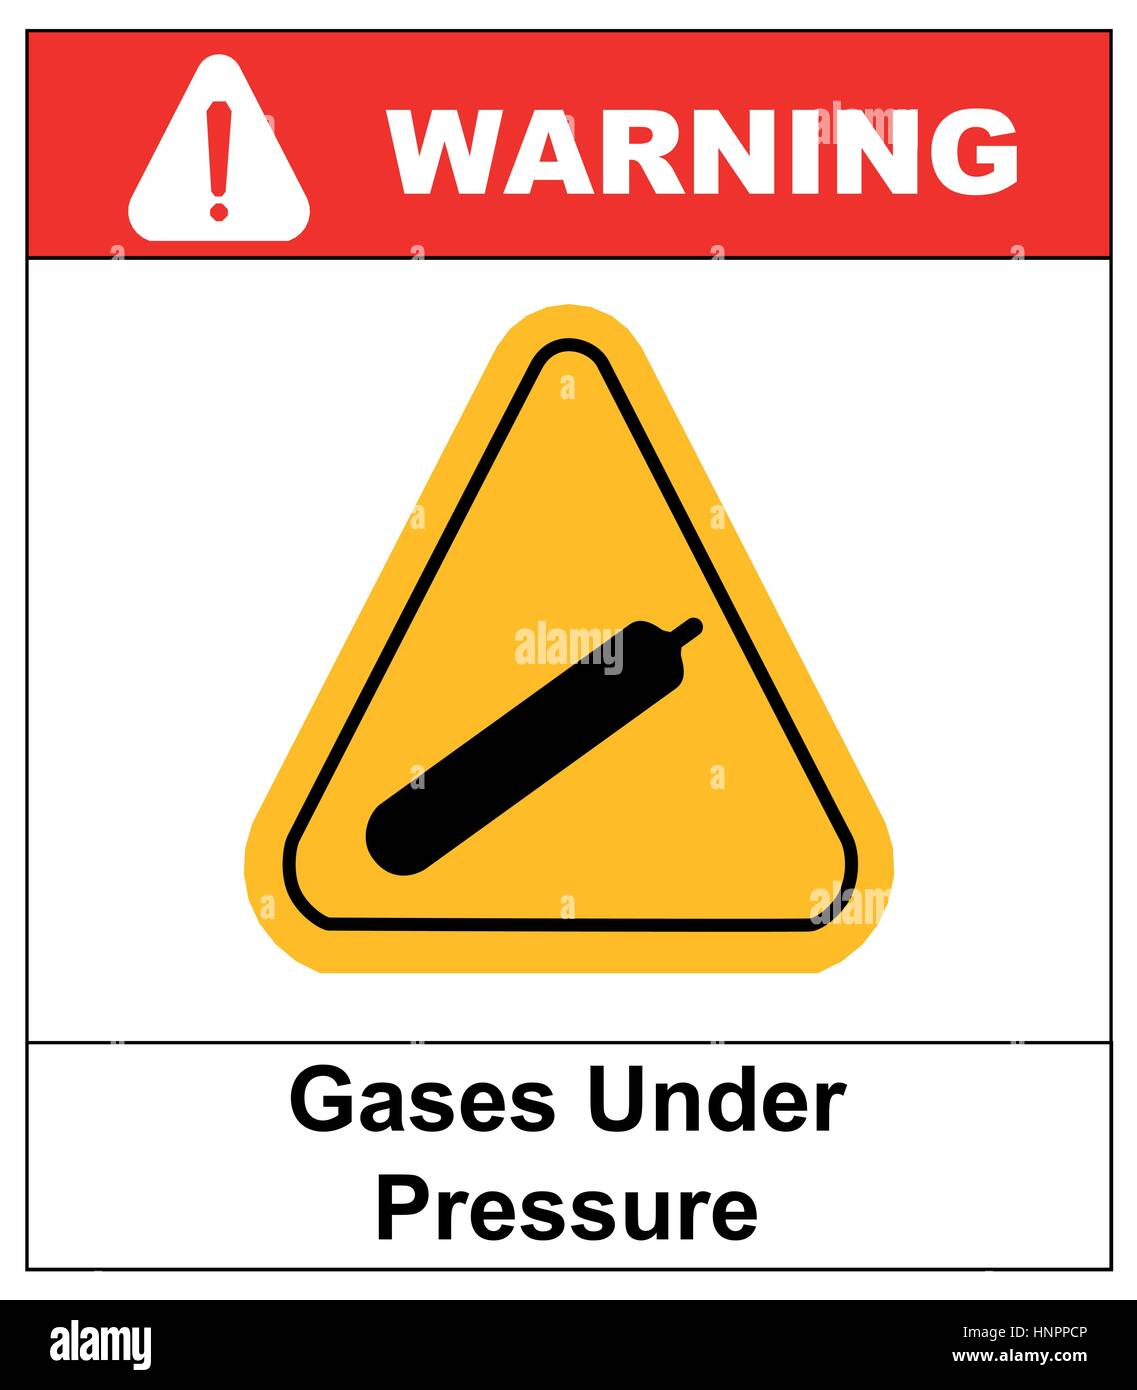 Gases Under Pressure Stock Photos Gases Under Pressure Stock